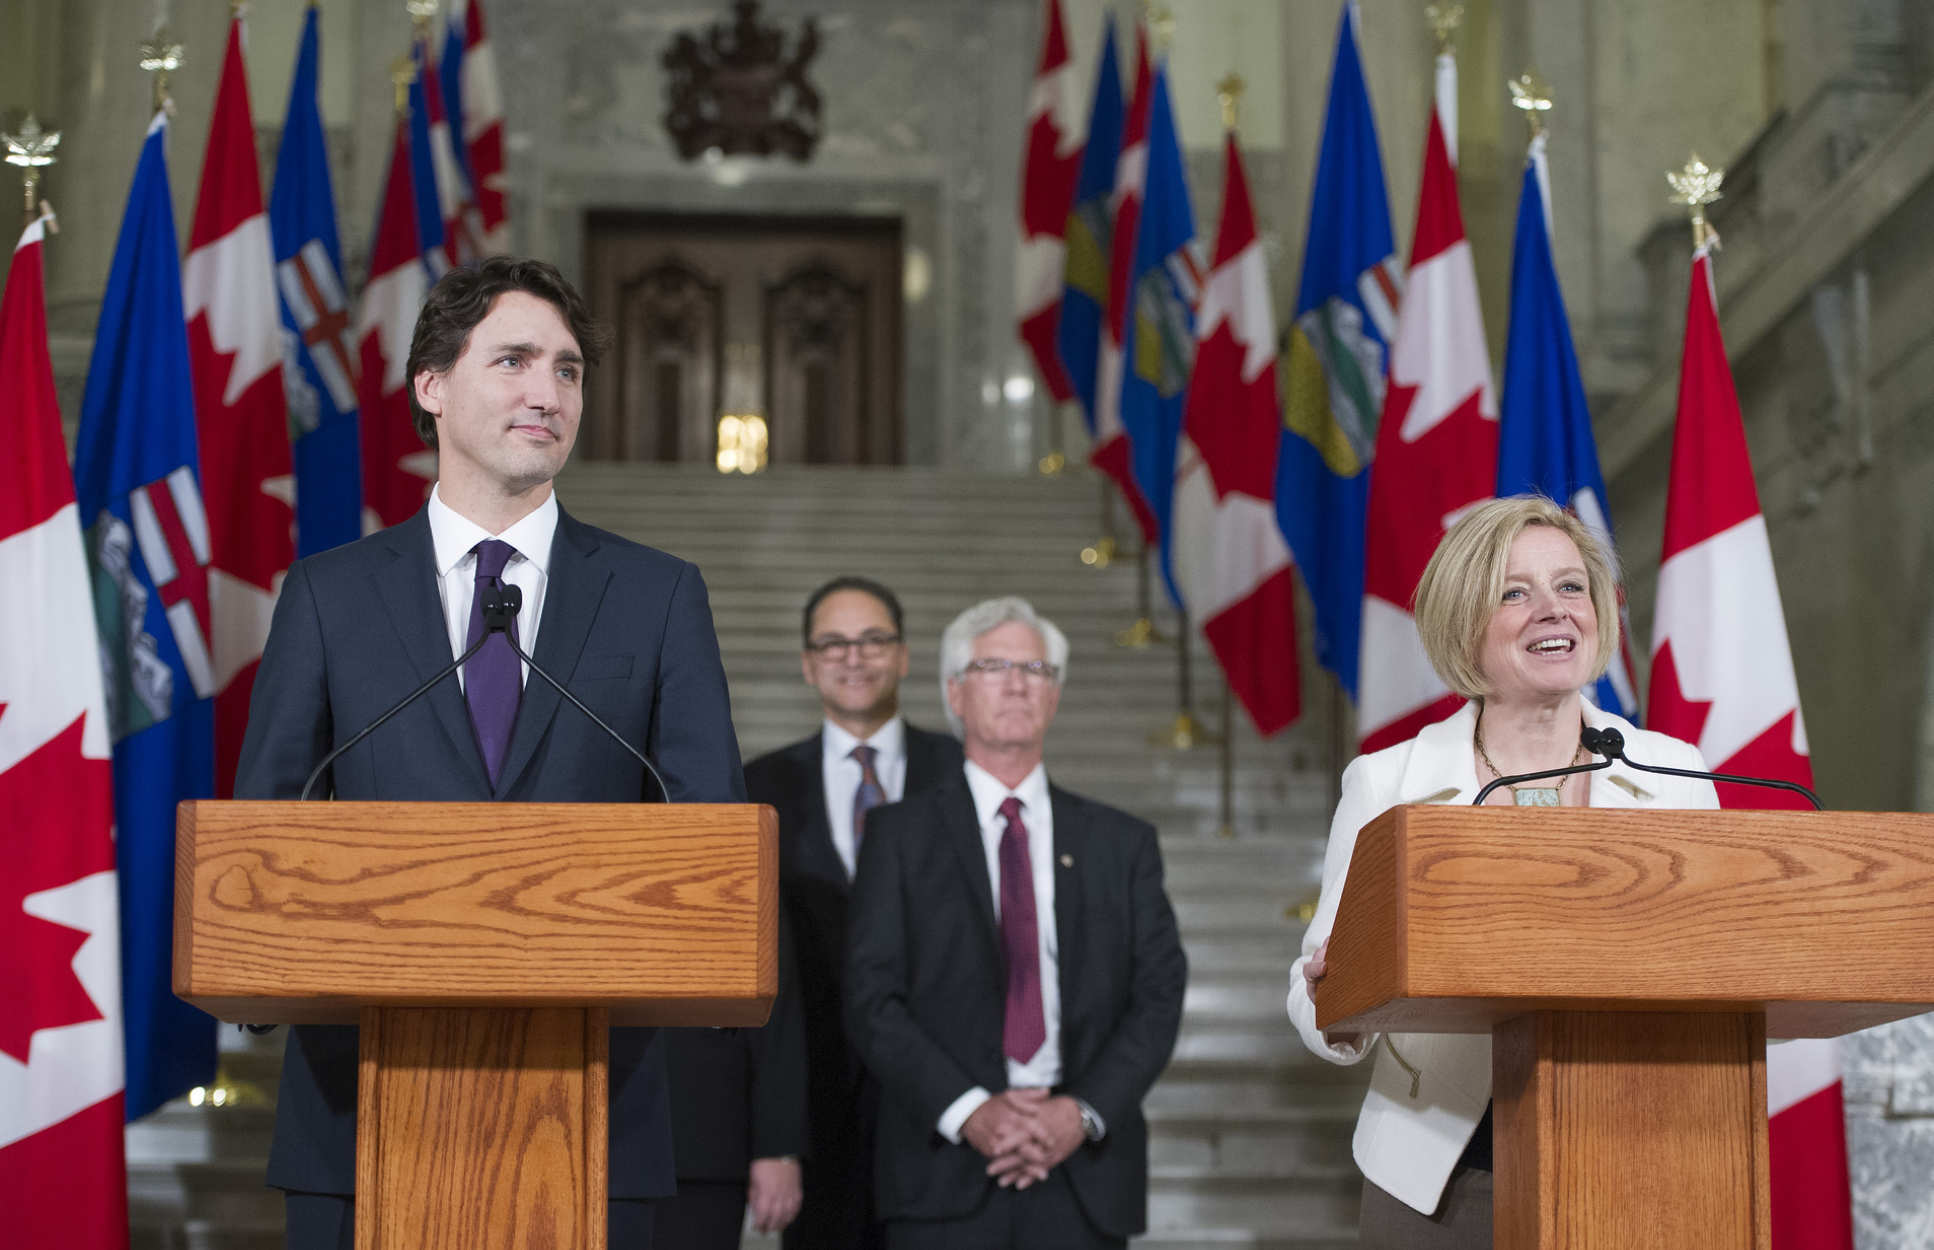 Premier Rachel Notley and Prime Minister Justin Trudeau speaking in Edmonton during the Prime Minister's visit to Alberta in 2016. ((c)Chris Schwarz/Government of Alberta)